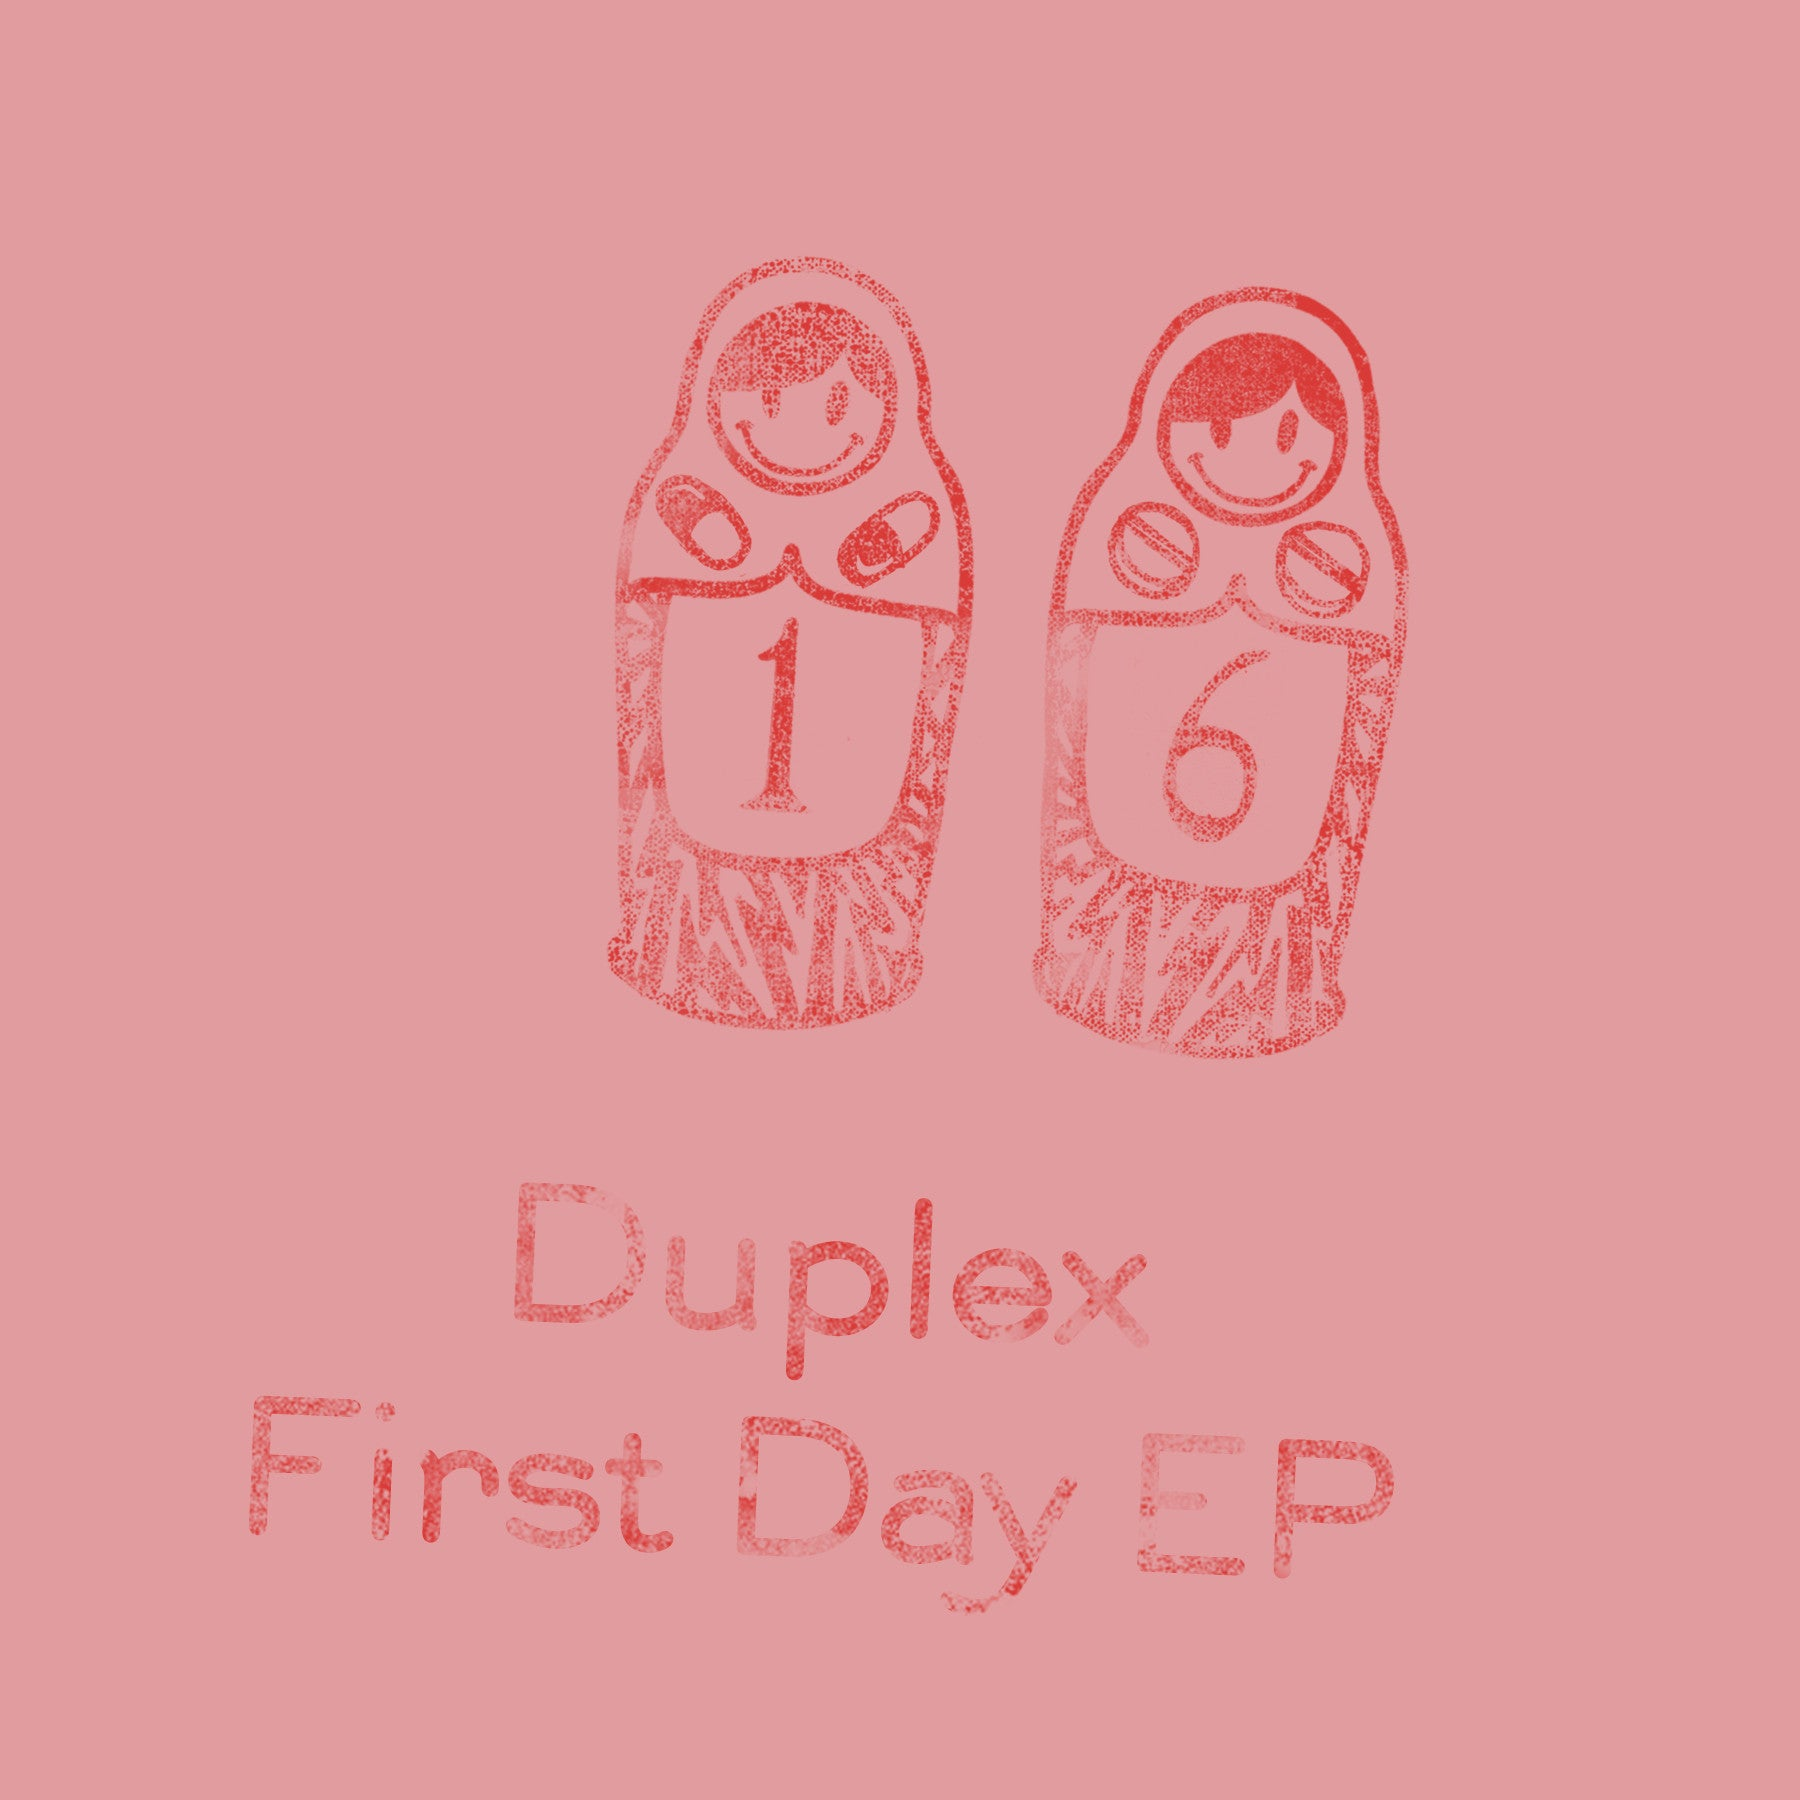 Duplex - First Day EP